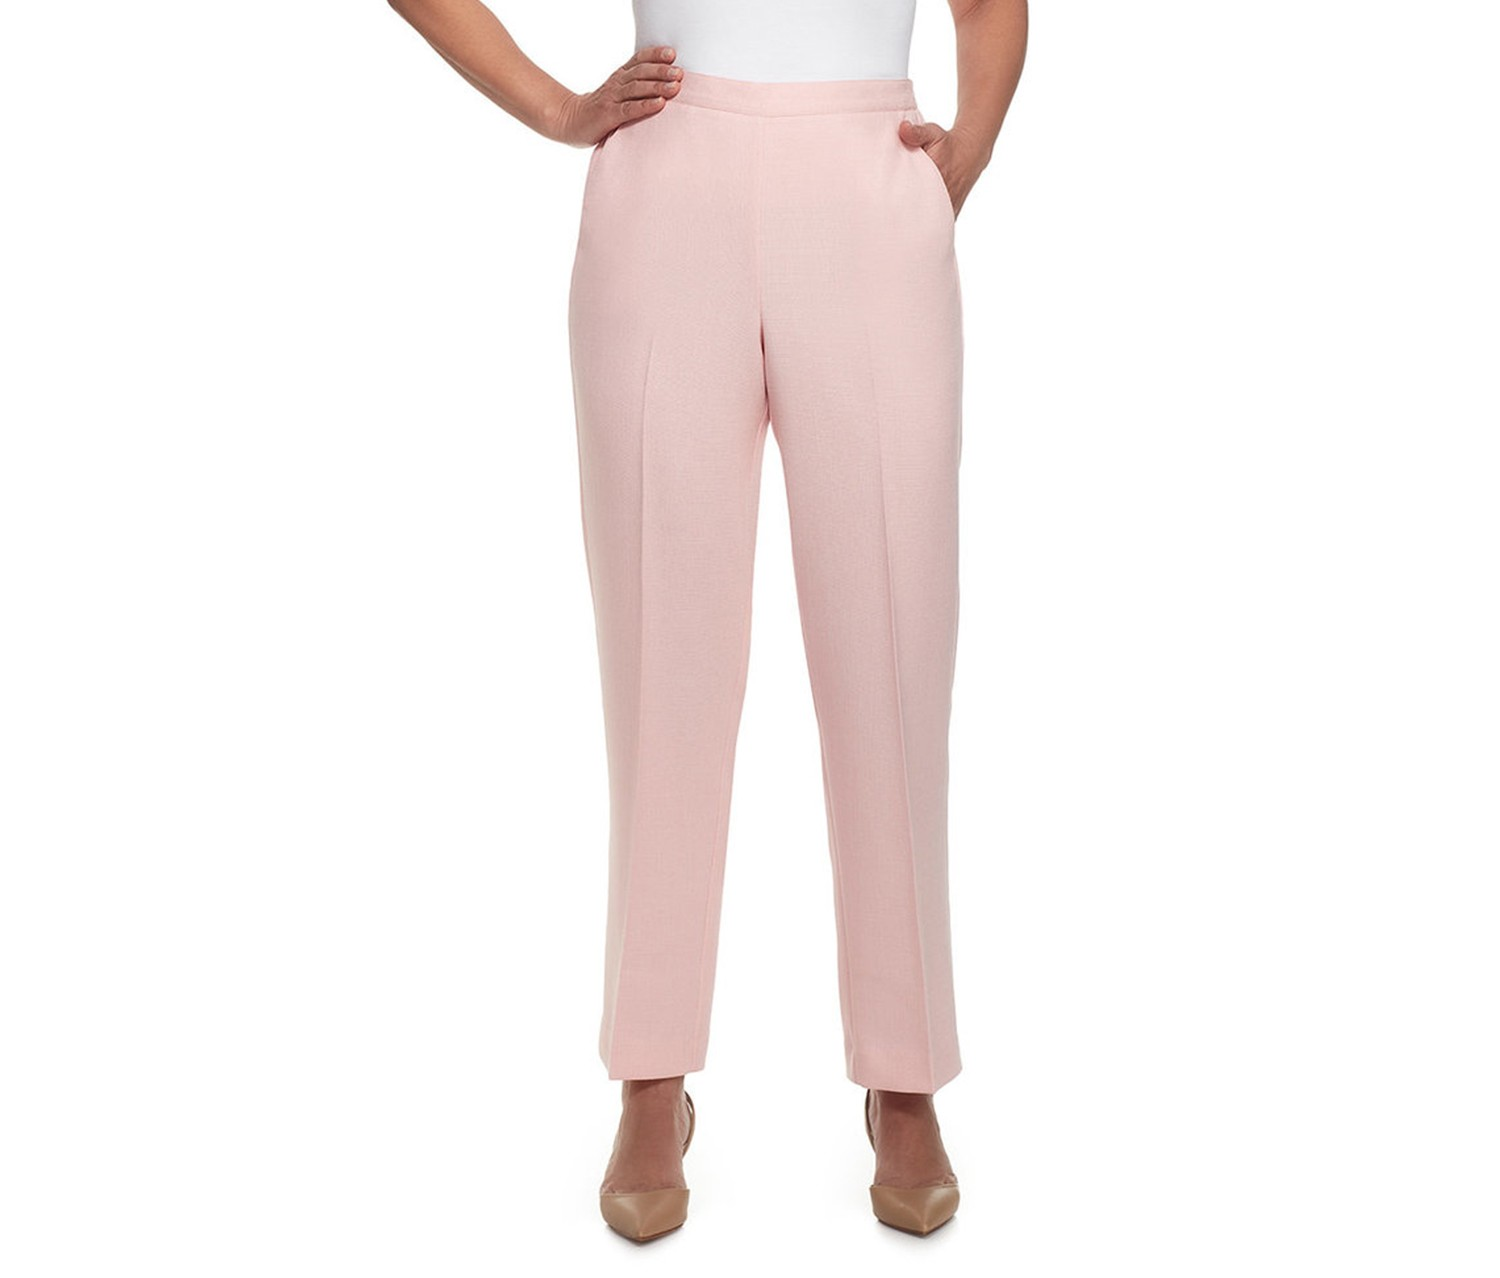 Alfred Dunner Petite Hill Pull-On Pants, Rose